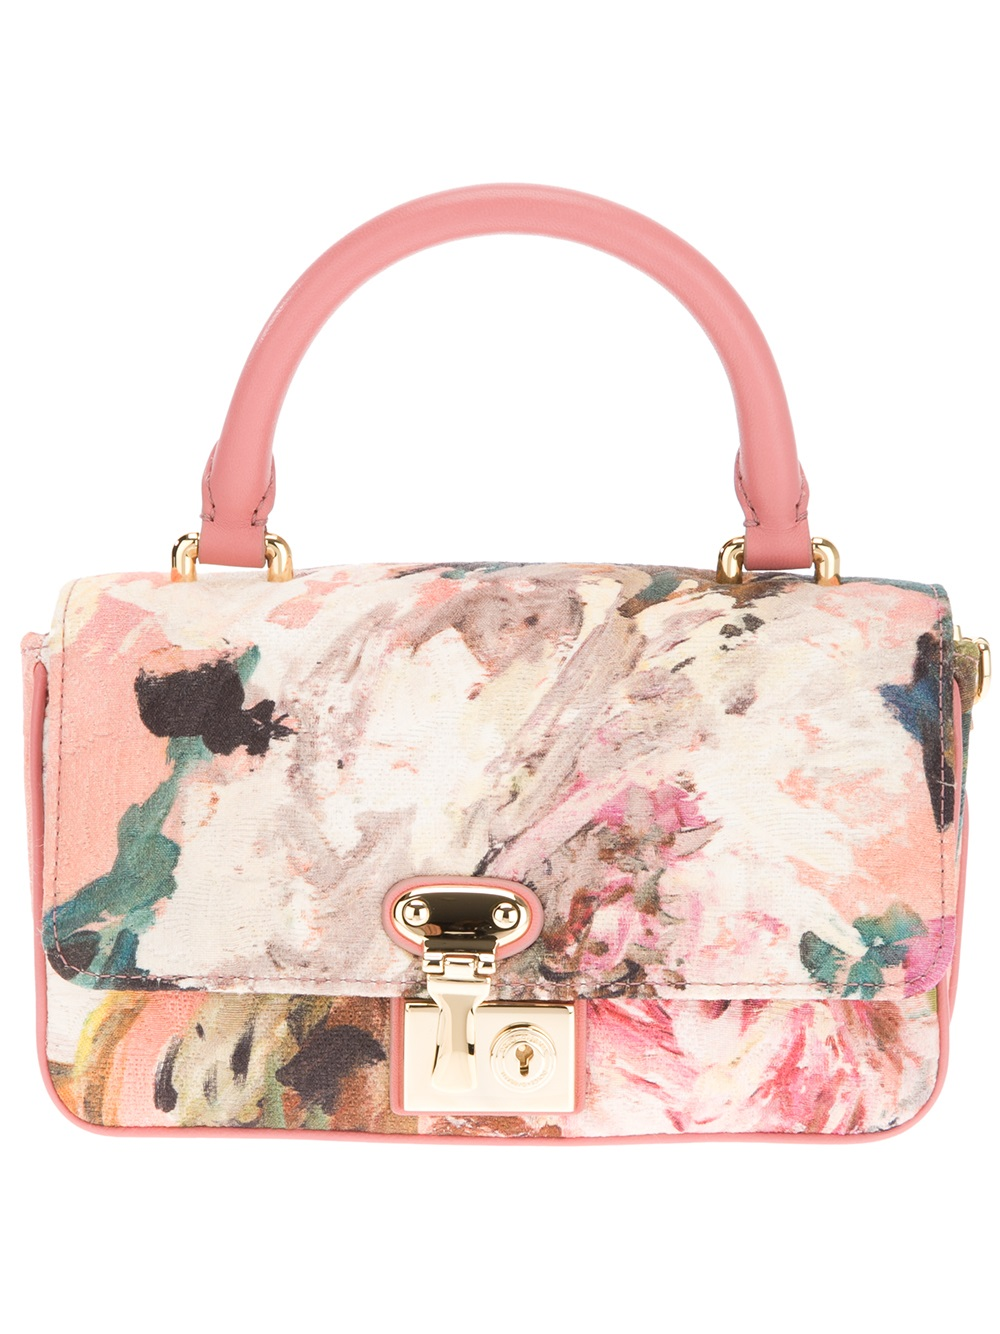 Dolce & gabbana Floral Shoulder Bag | Lyst